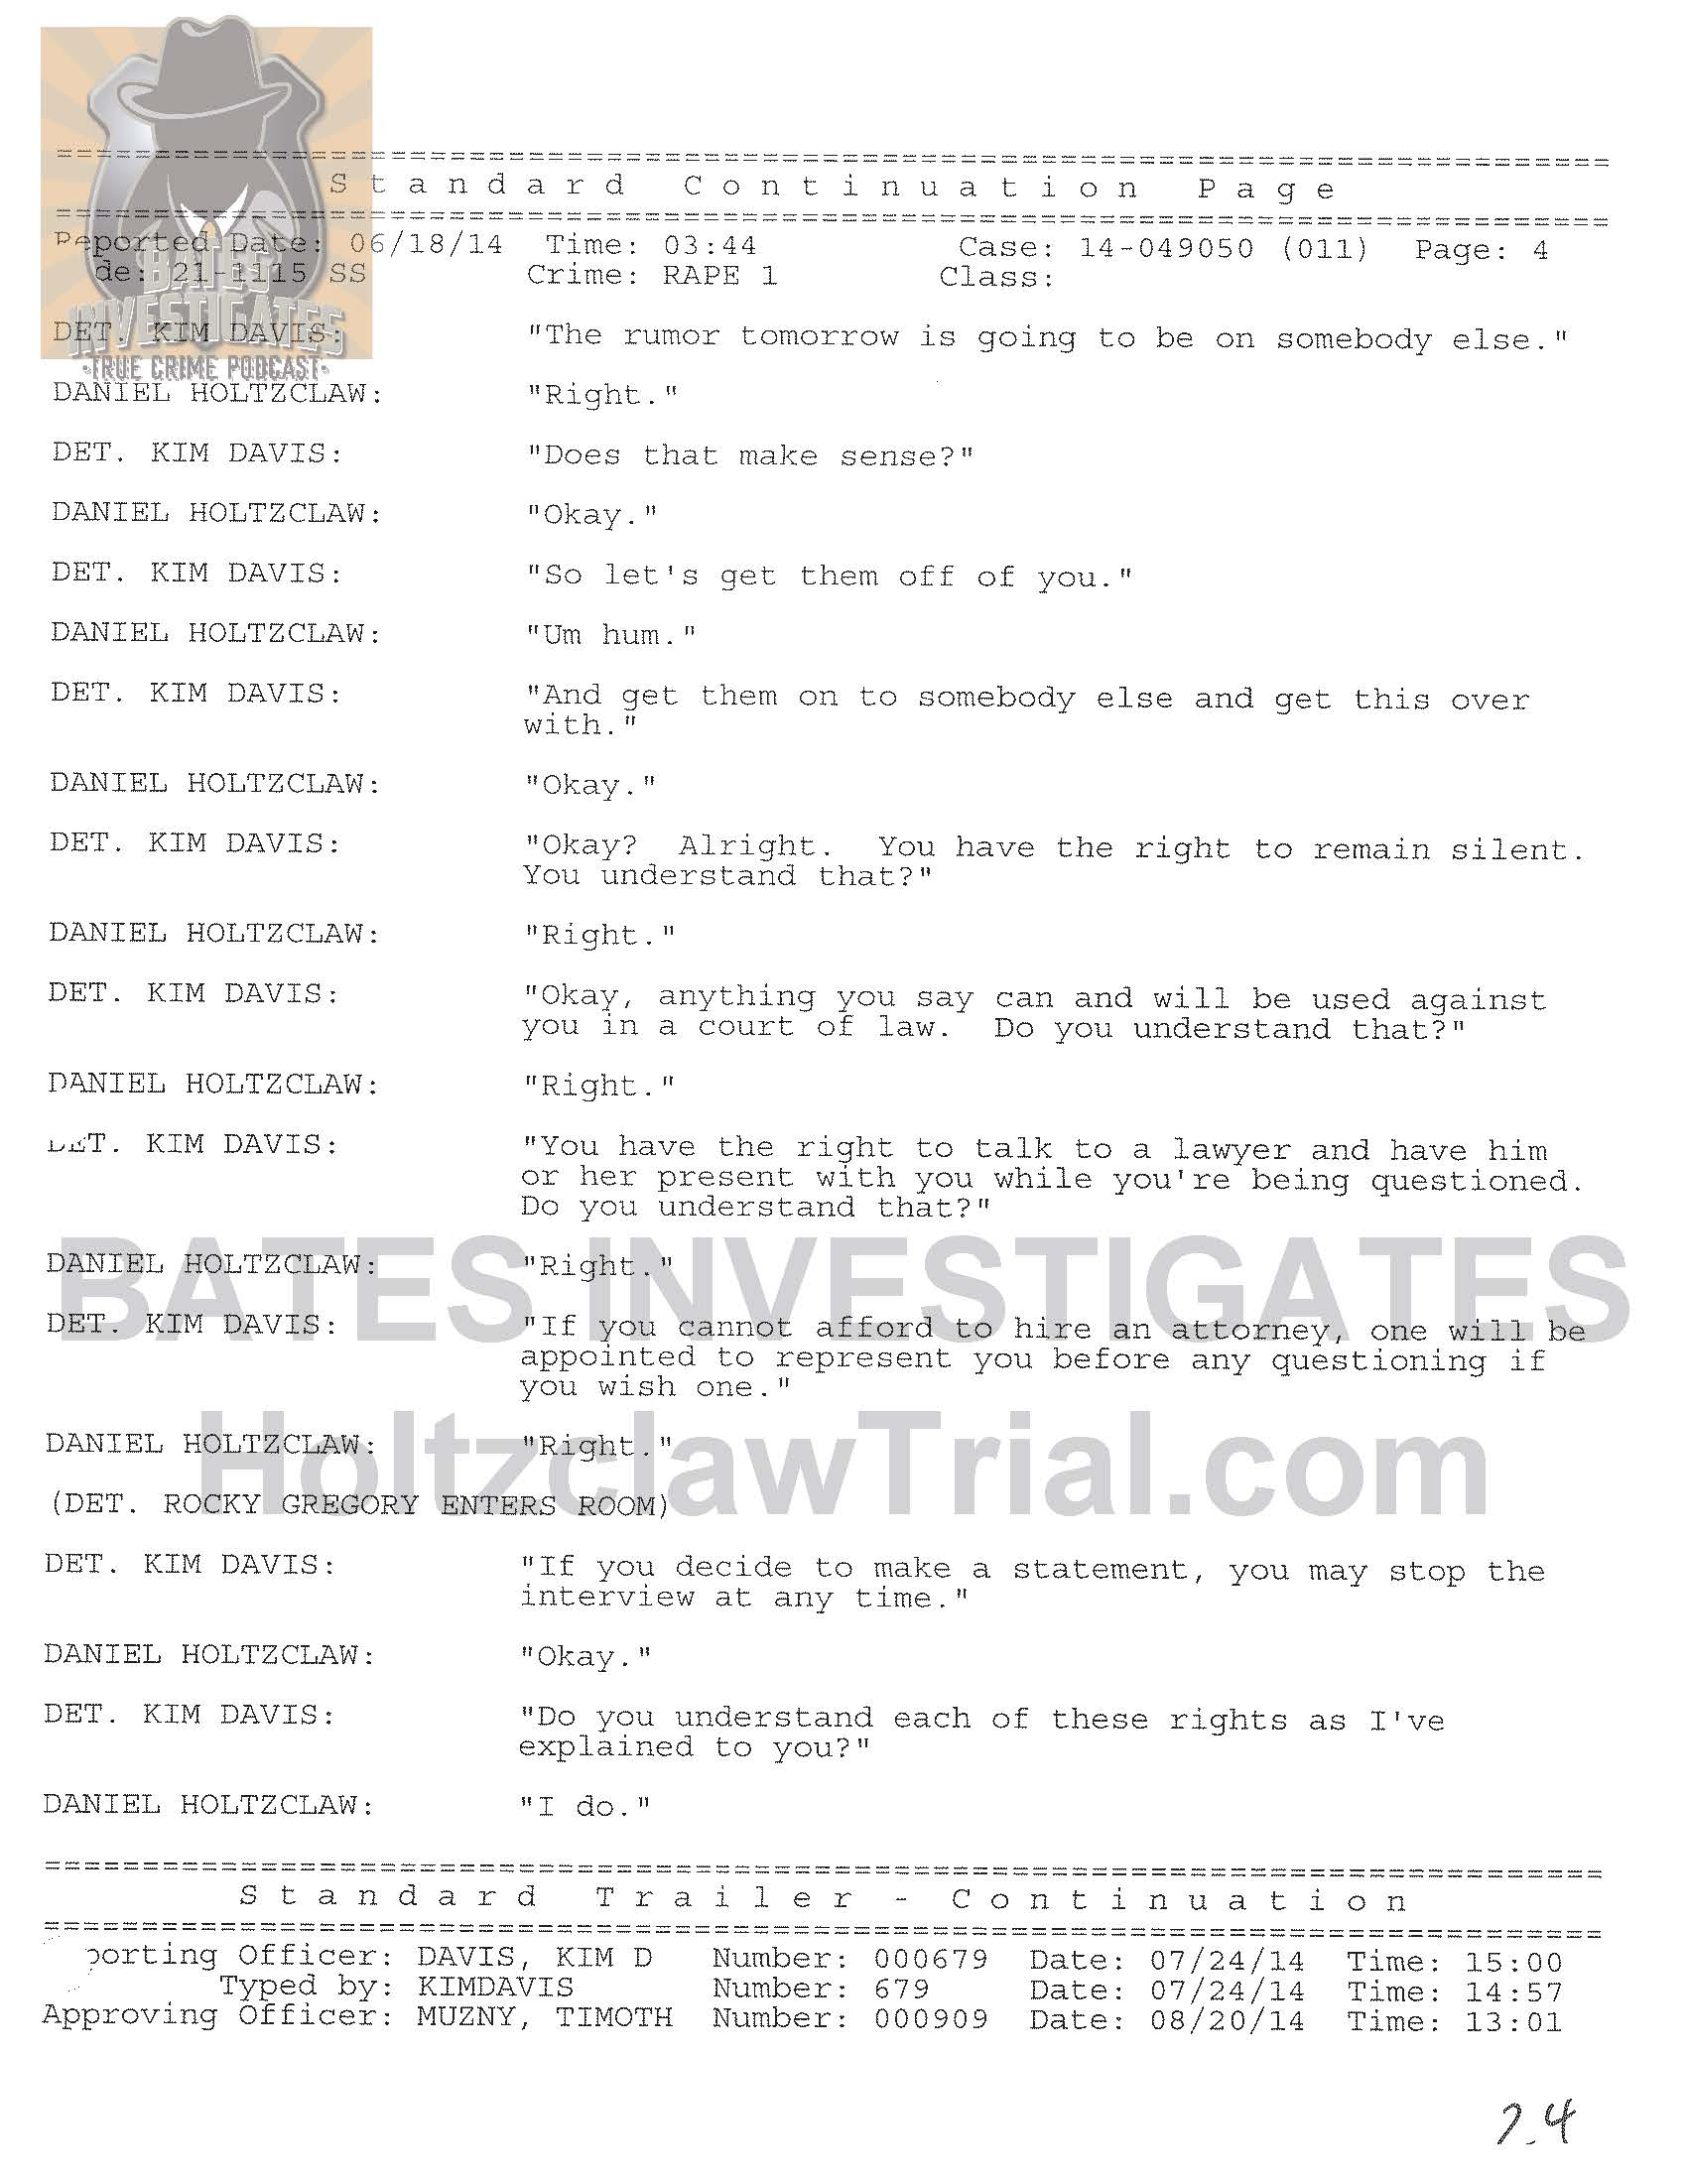 Holtzclaw Interrogation Transcript - Ep02 Redacted_Page_04.jpg